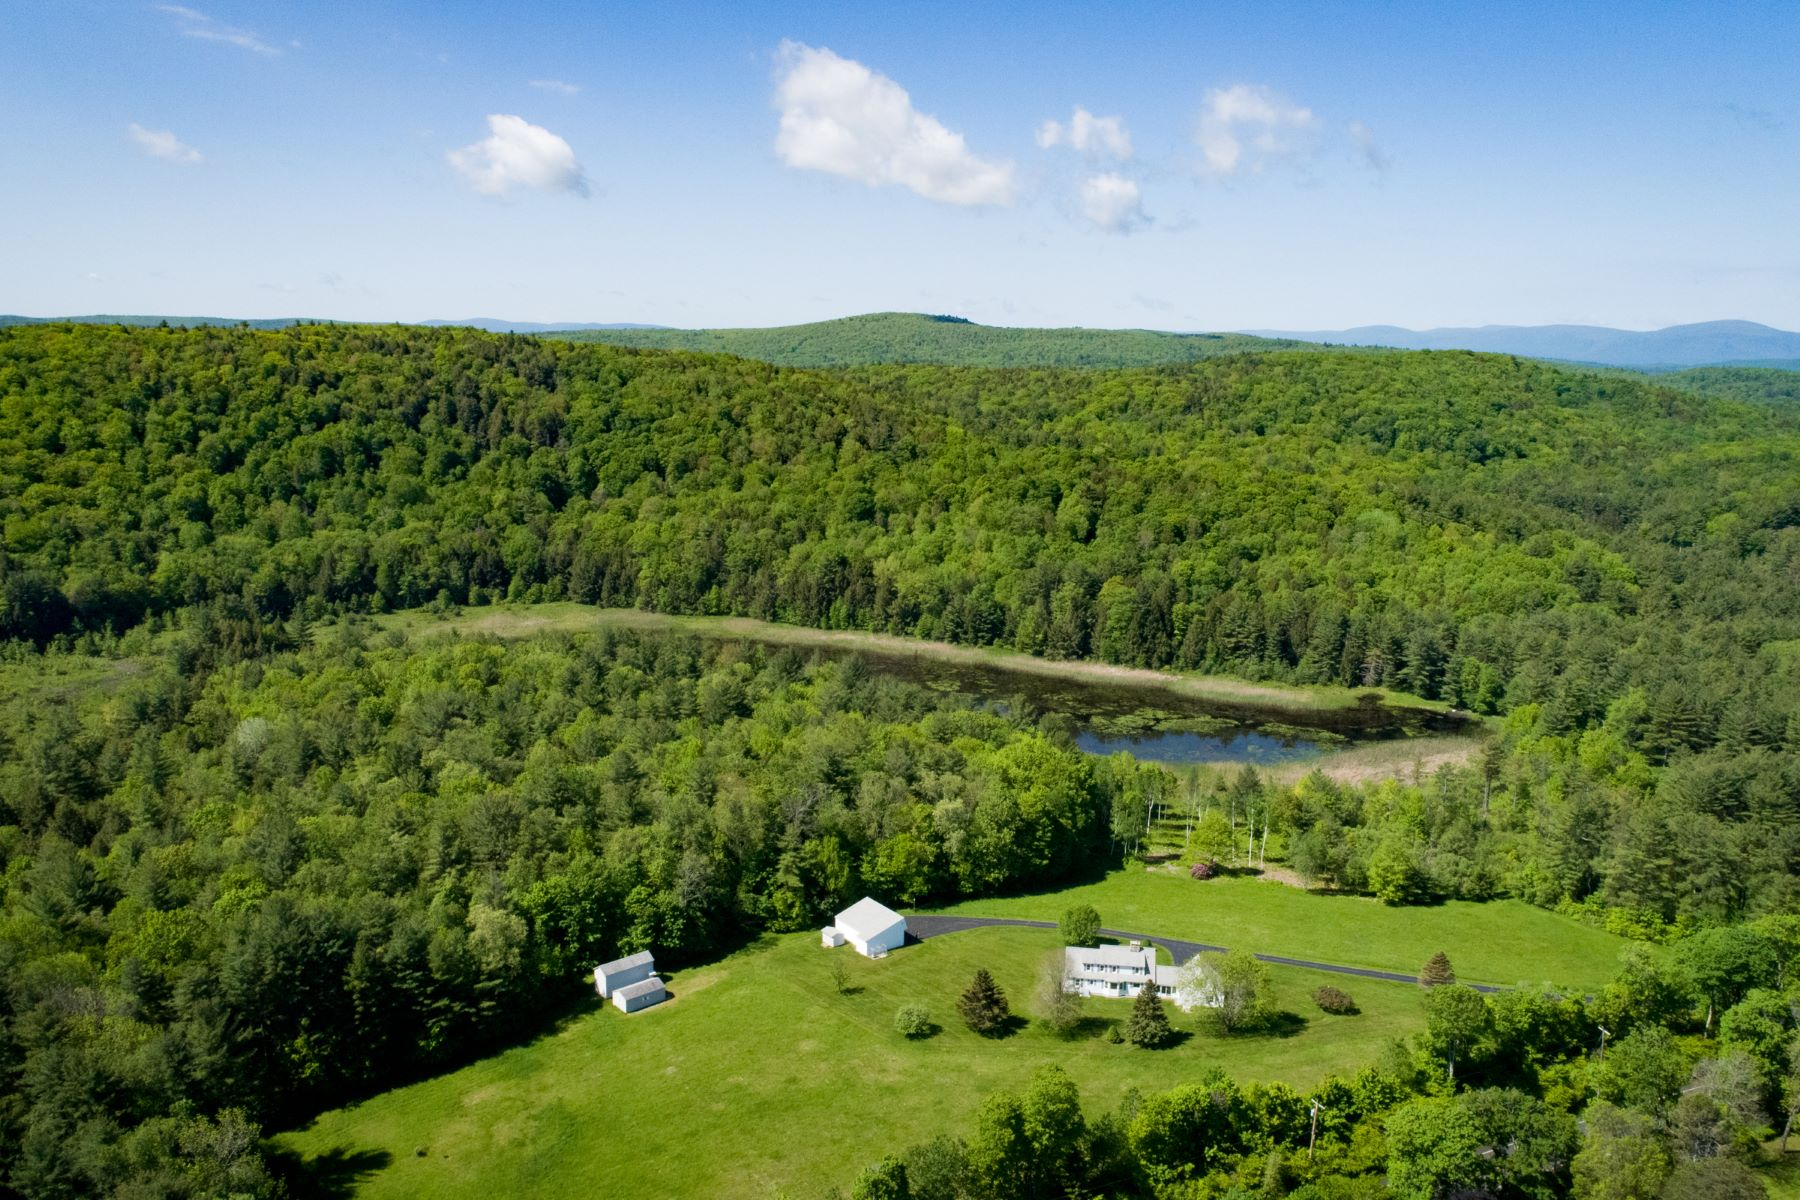 Tek Ailelik Ev için Satış at Outstanding 140+ Acre Property, with Picturesque 2,379 SF Cape 540 Main Rd Monterey, Massachusetts 01245 Amerika Birleşik Devletleri